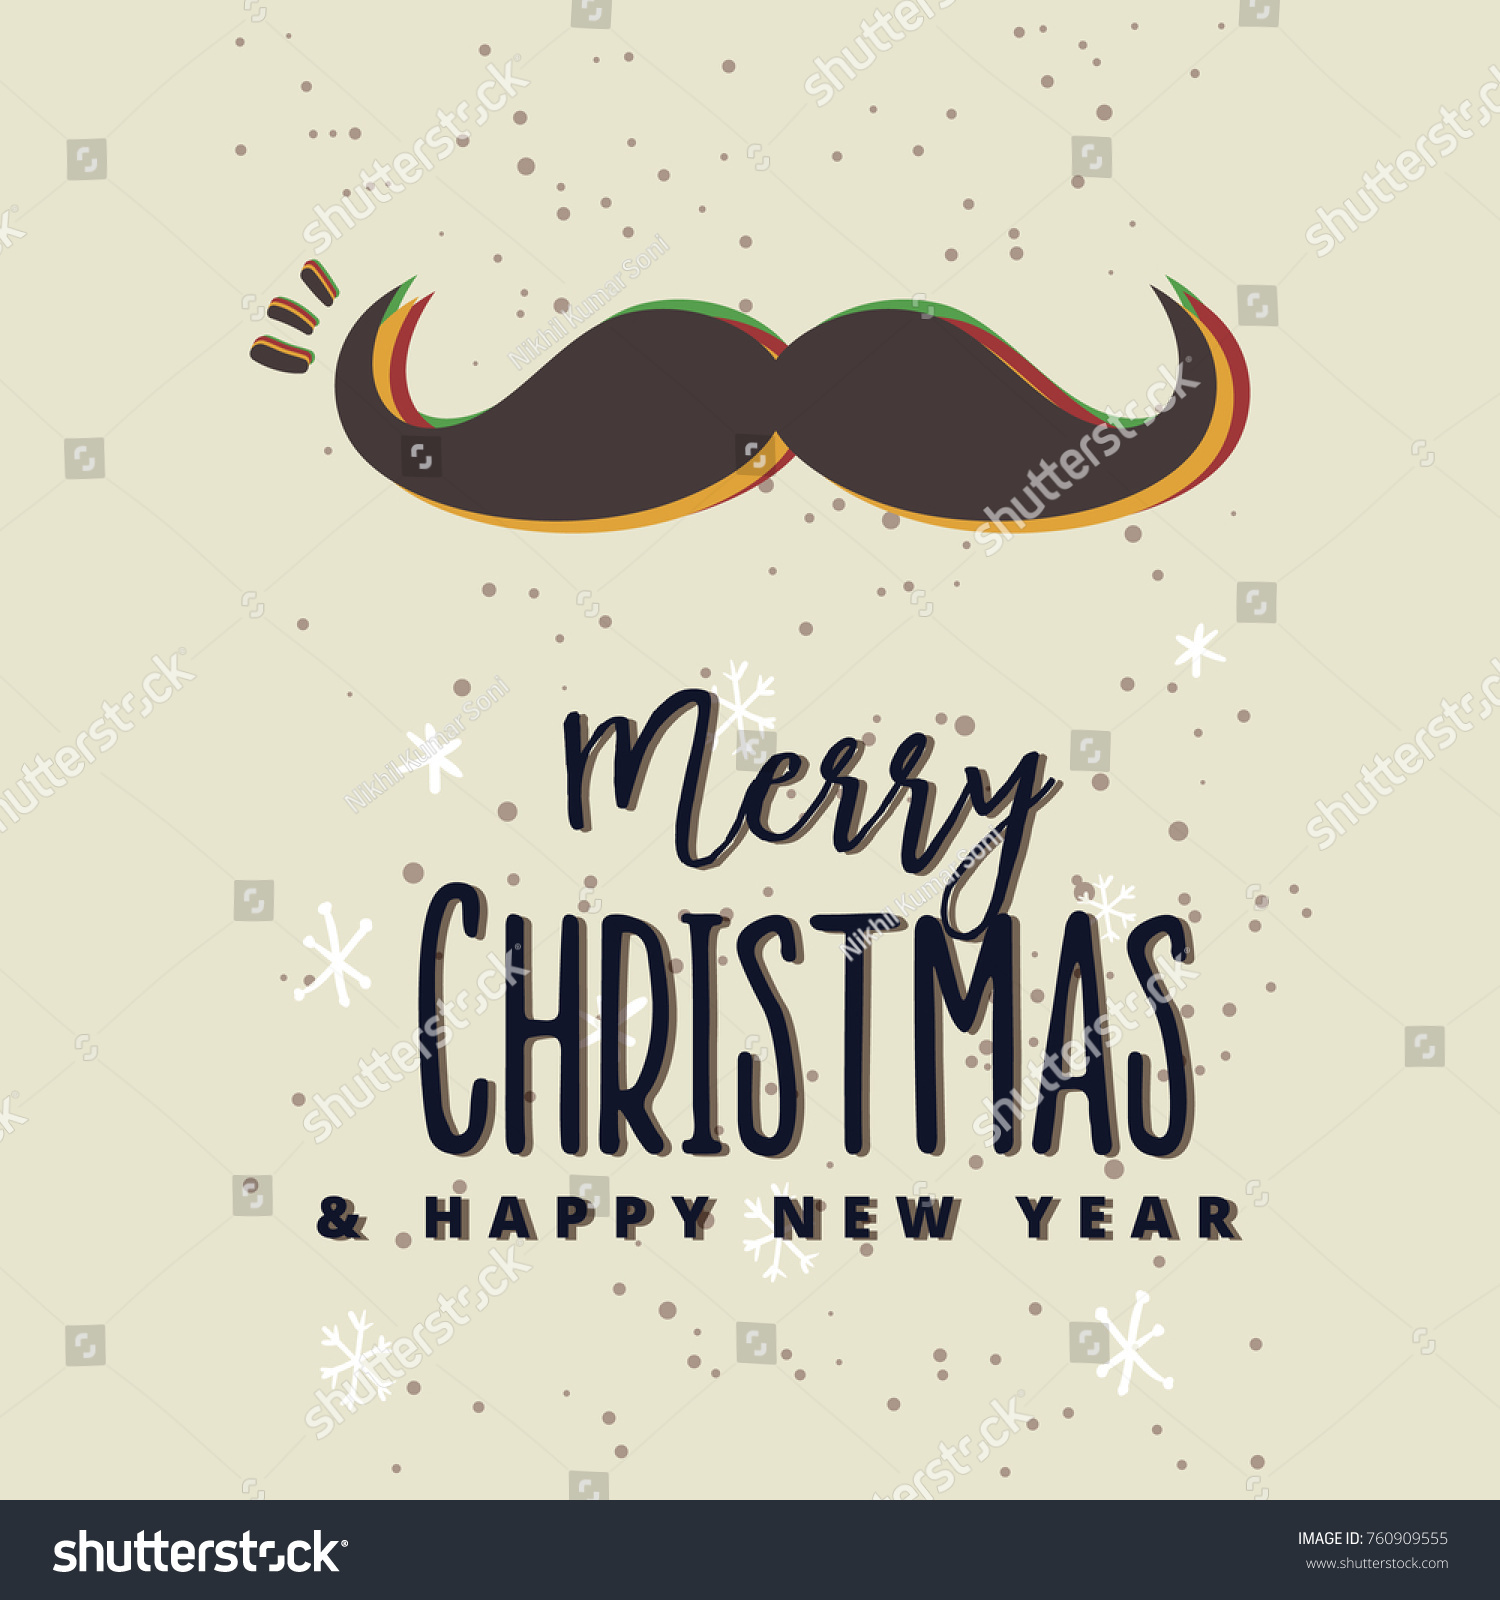 merry christmas and happy new year greeting card with calligraphy handwritten modern brush lettering with